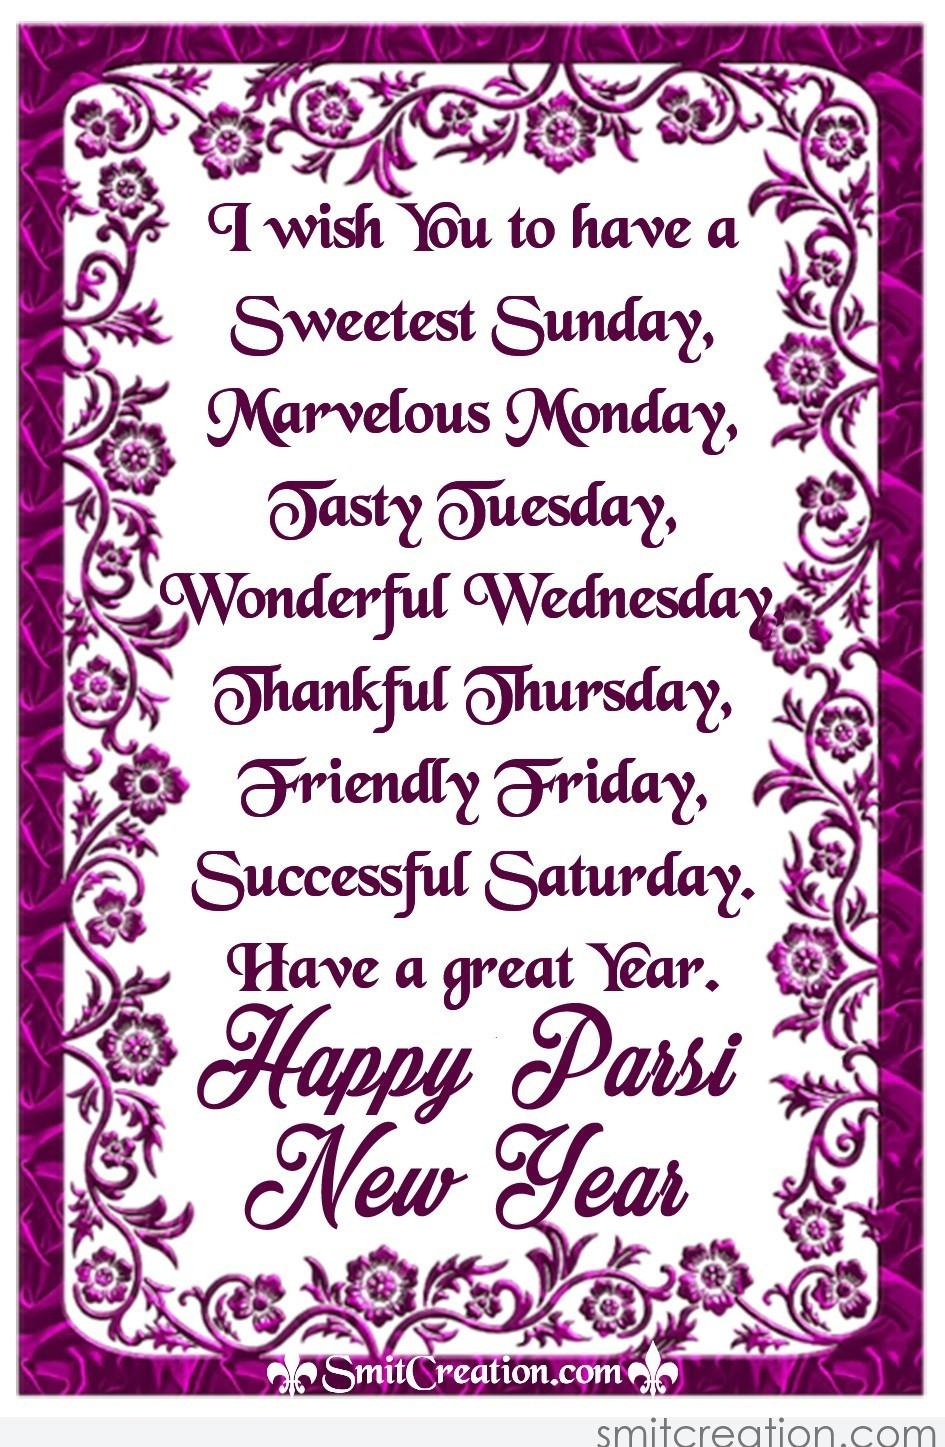 Parsi New Year Pictures and Graphics - SmitCreation.com ...